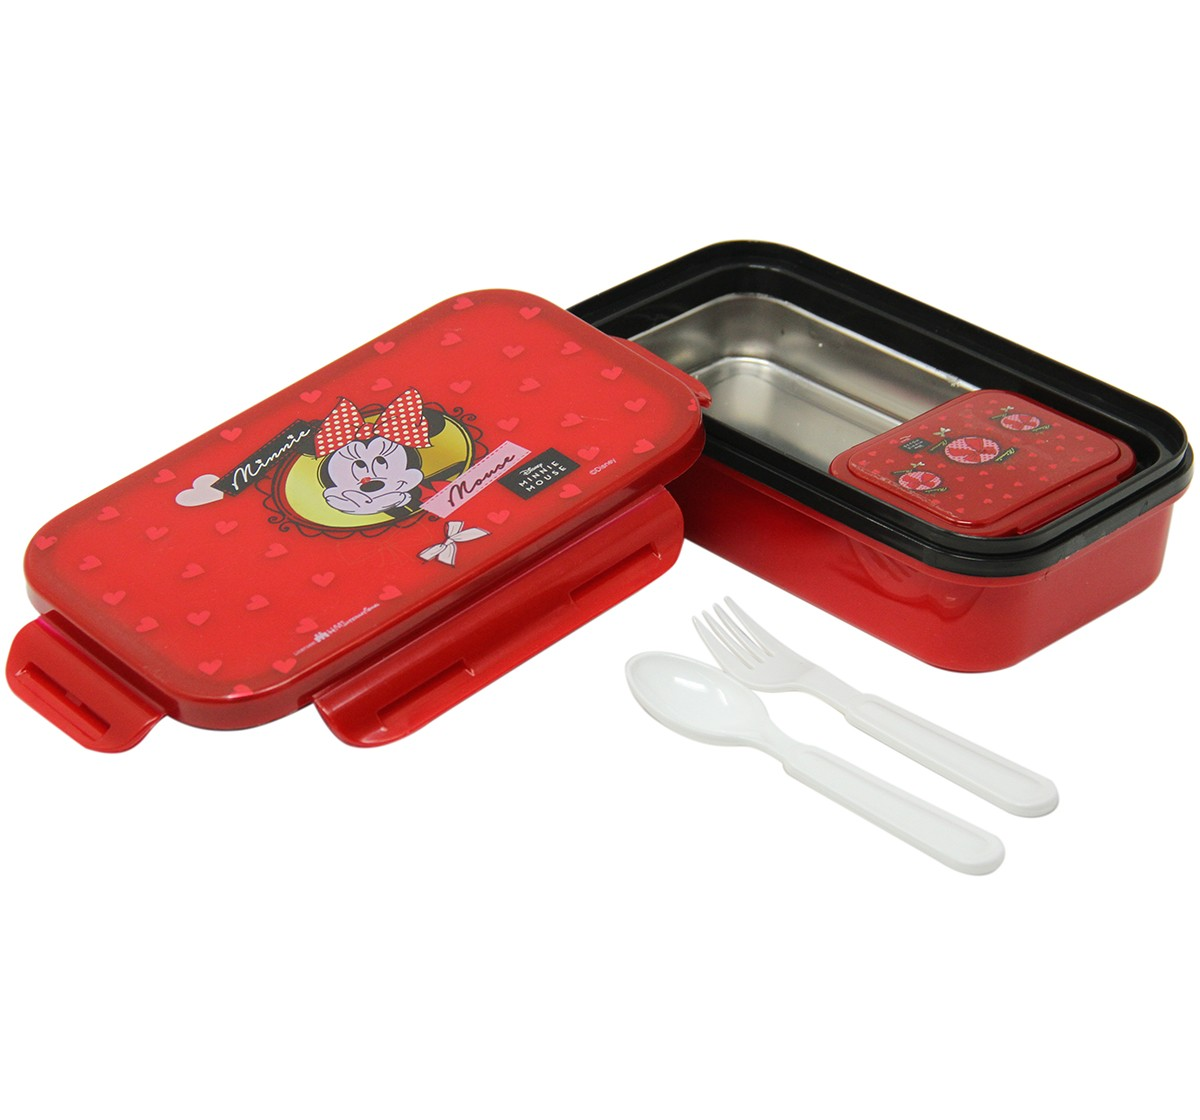 Disney Insulated Lunch Box Minnie Lunch Bags & Boxes for Kids age 3Y+ (Red)